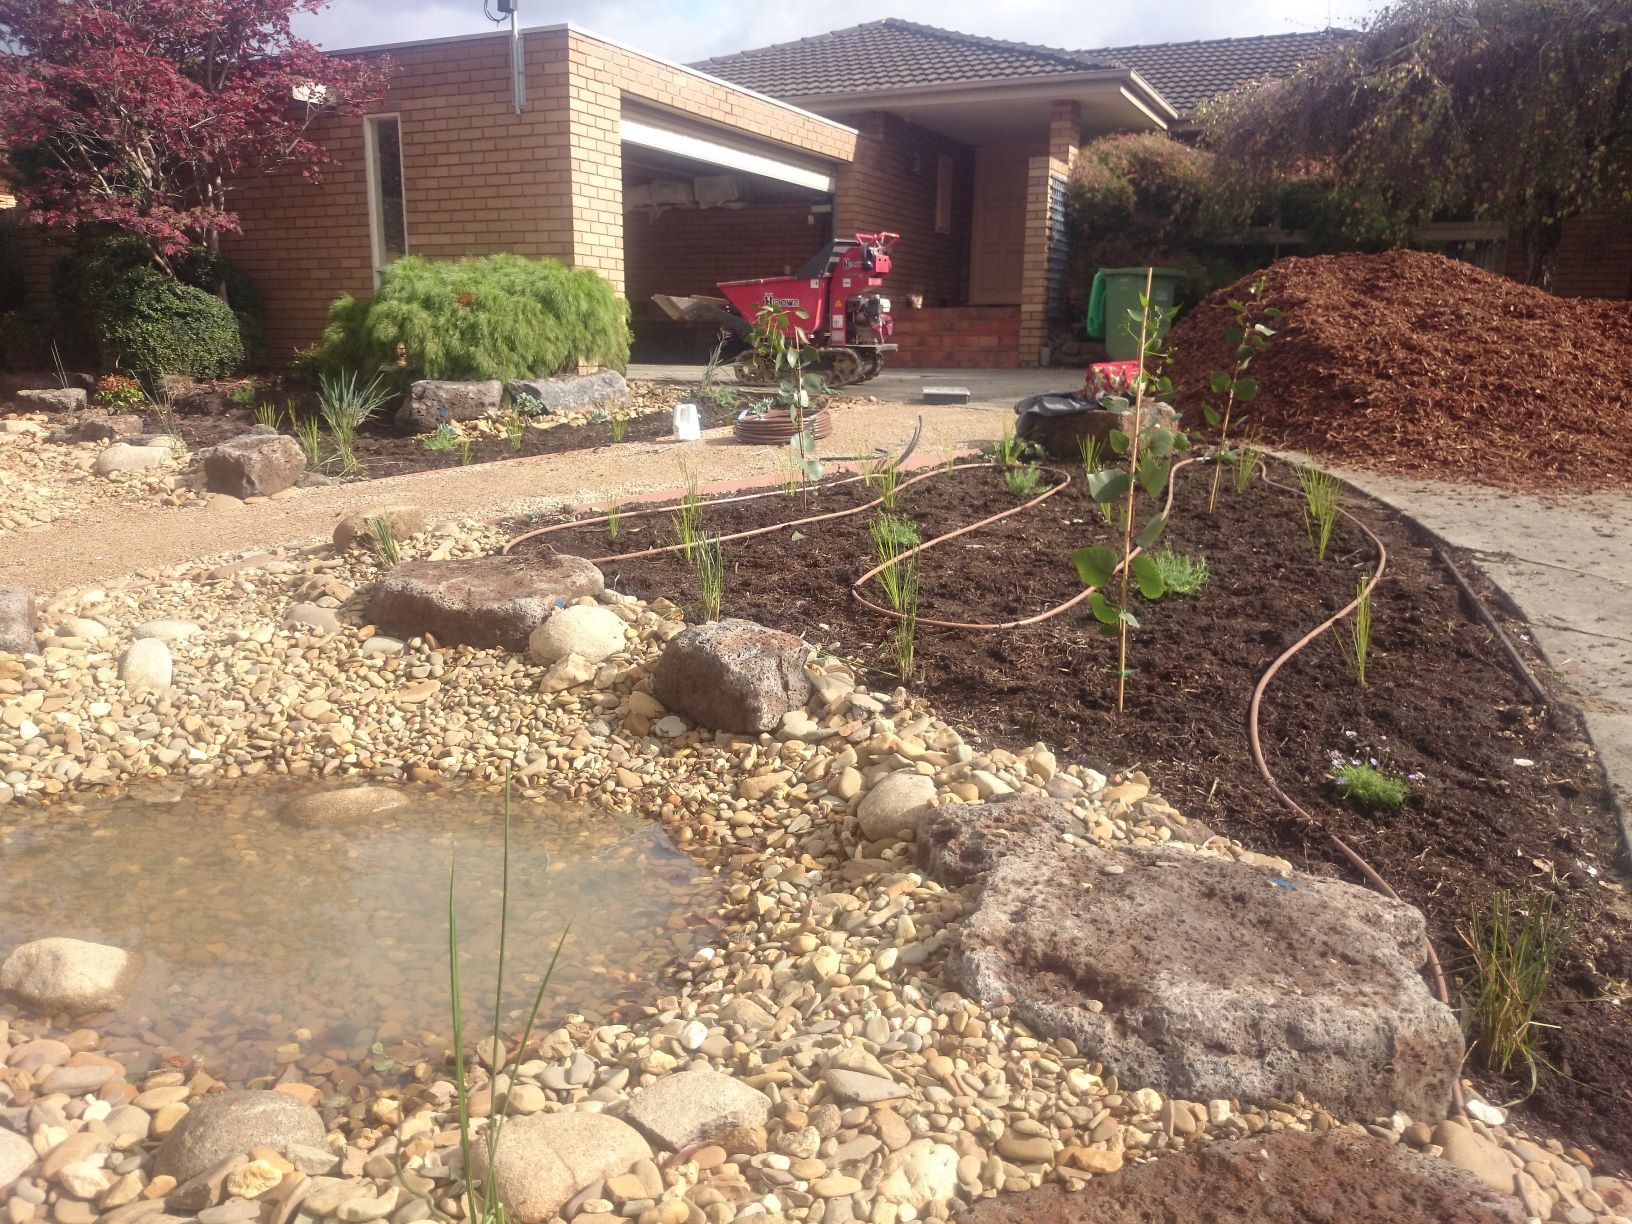 birds to enjoy a bath, Pond, dripper pipe for watering, River stones, Garden beds